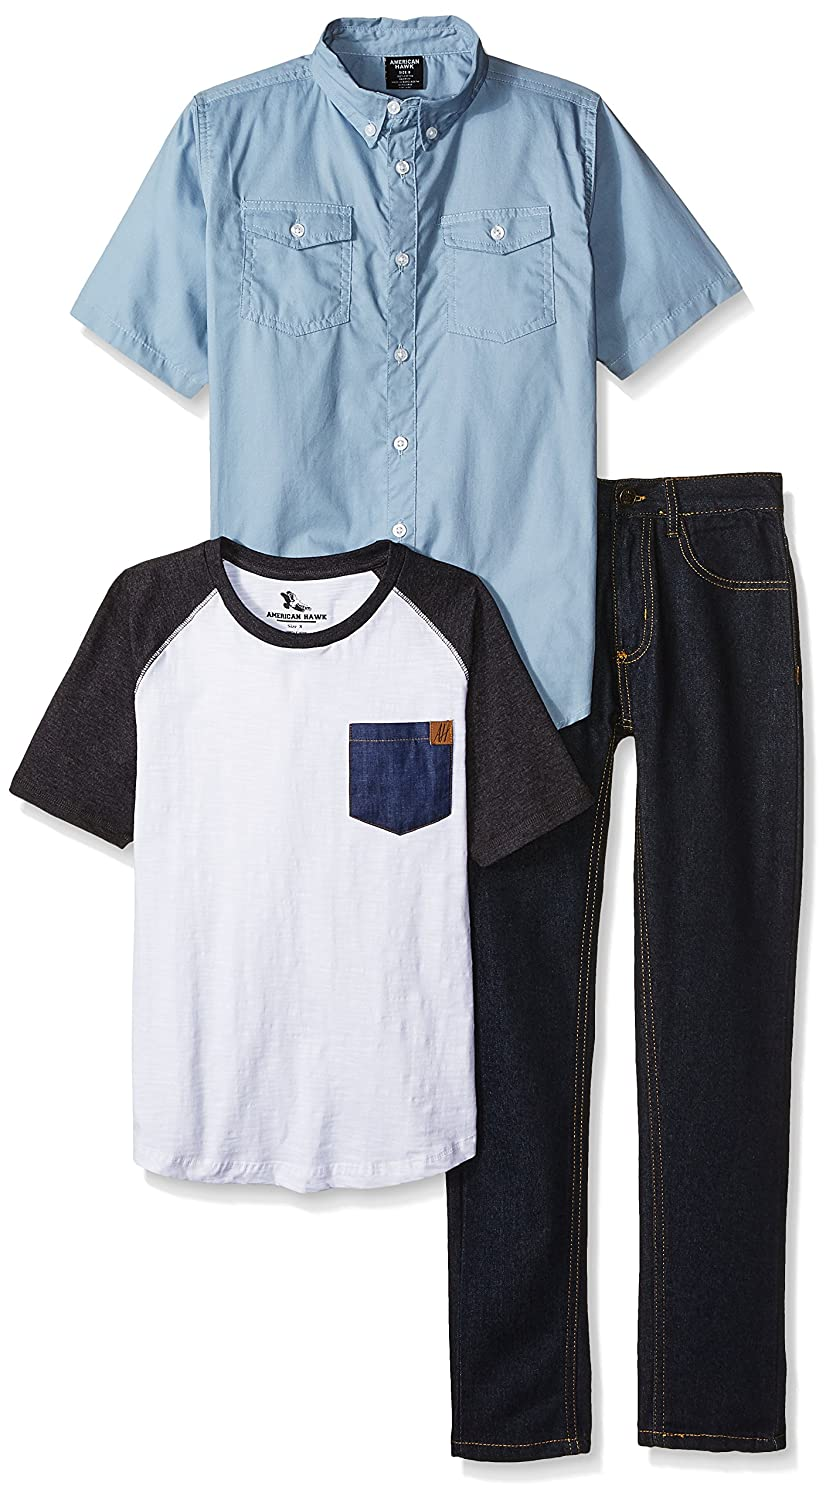 American Hawk Boys' Short Sleeve, T-Shirt and Pant Set (More Styles) SJ63_1